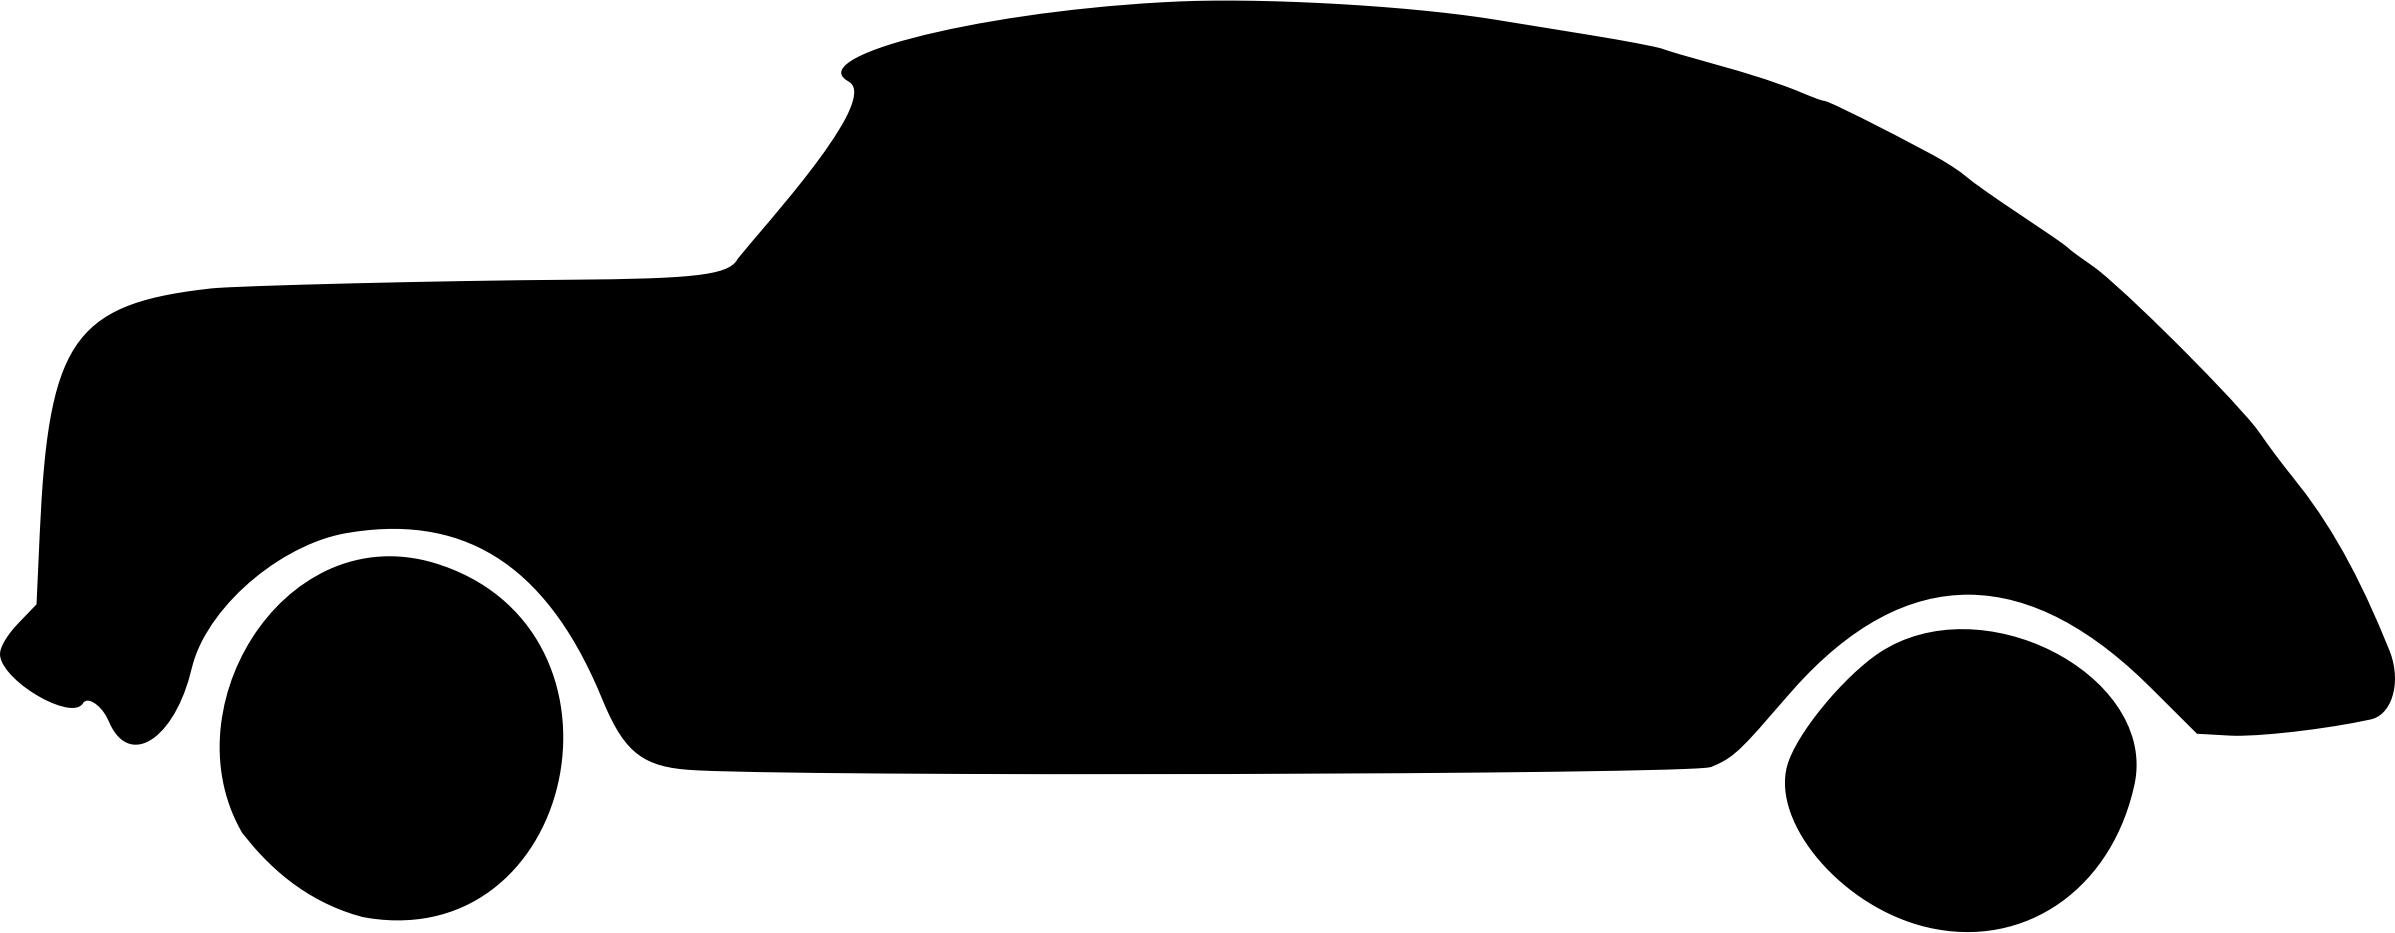 2395x933 Free Car Icons Png, Car Images